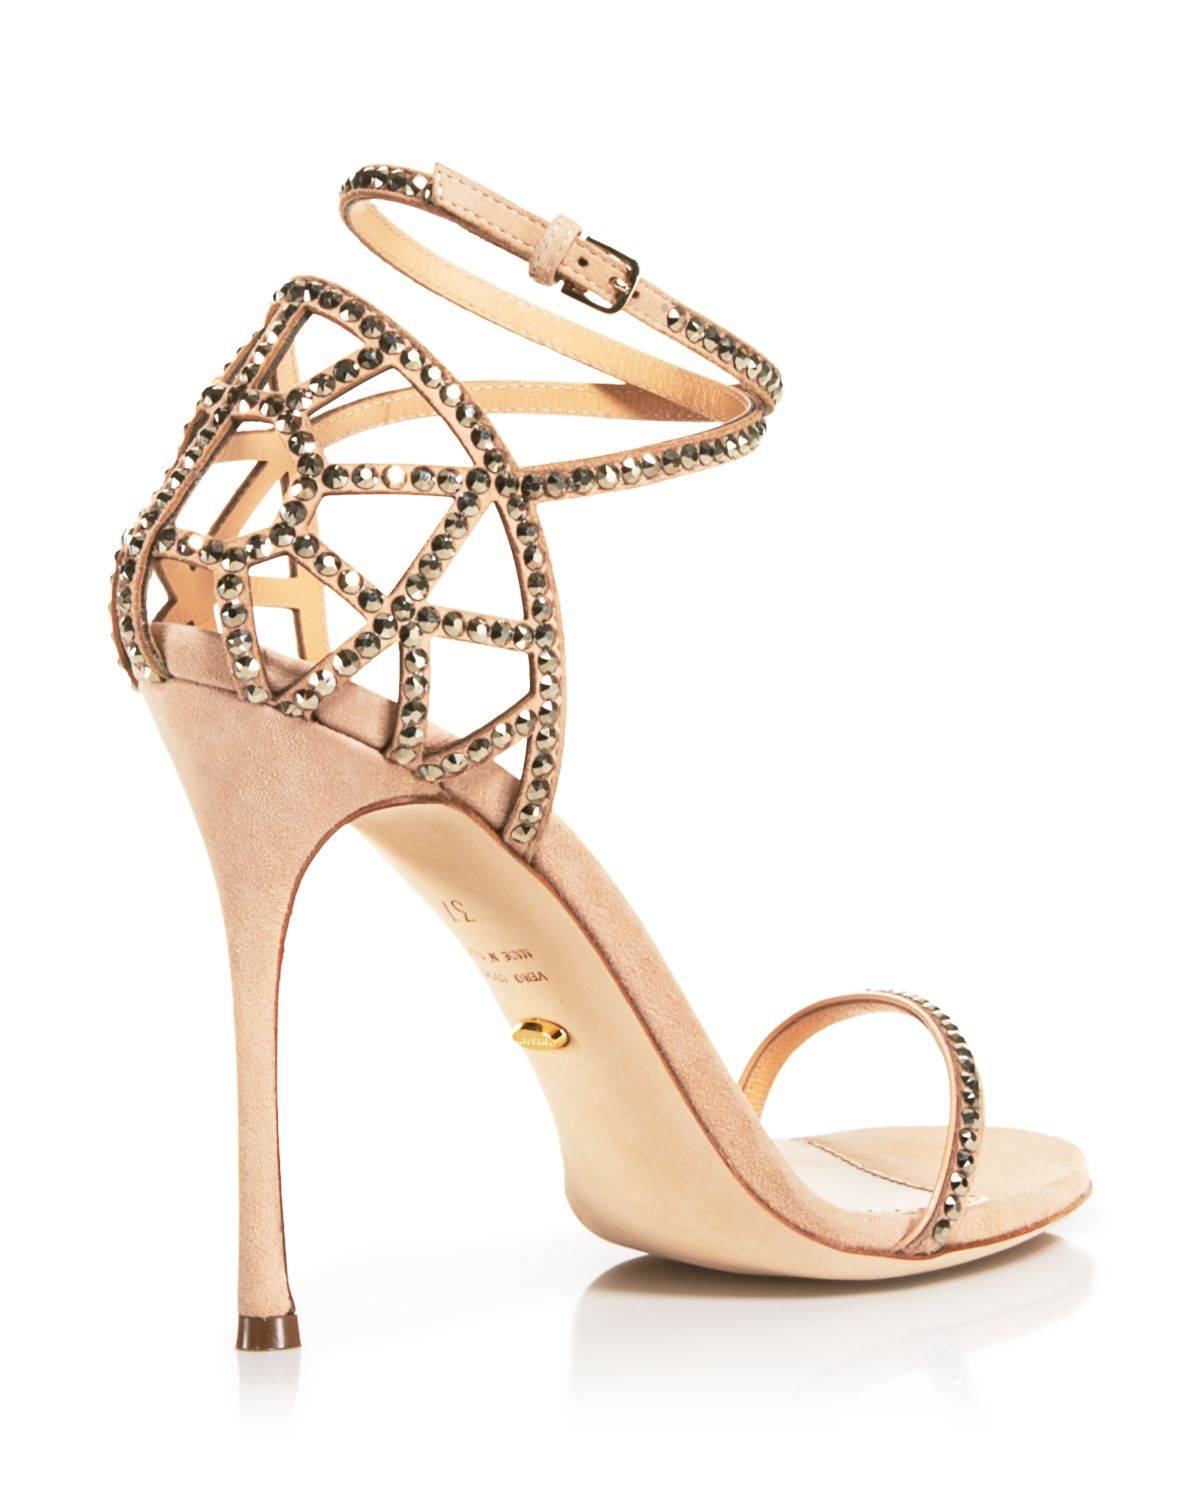 317f36e2415a6 sergio-rossi-rose-gold-strappy-evening-sandals-bon-ton-high-heel-pink -product-0-515632160-normal.jpeg